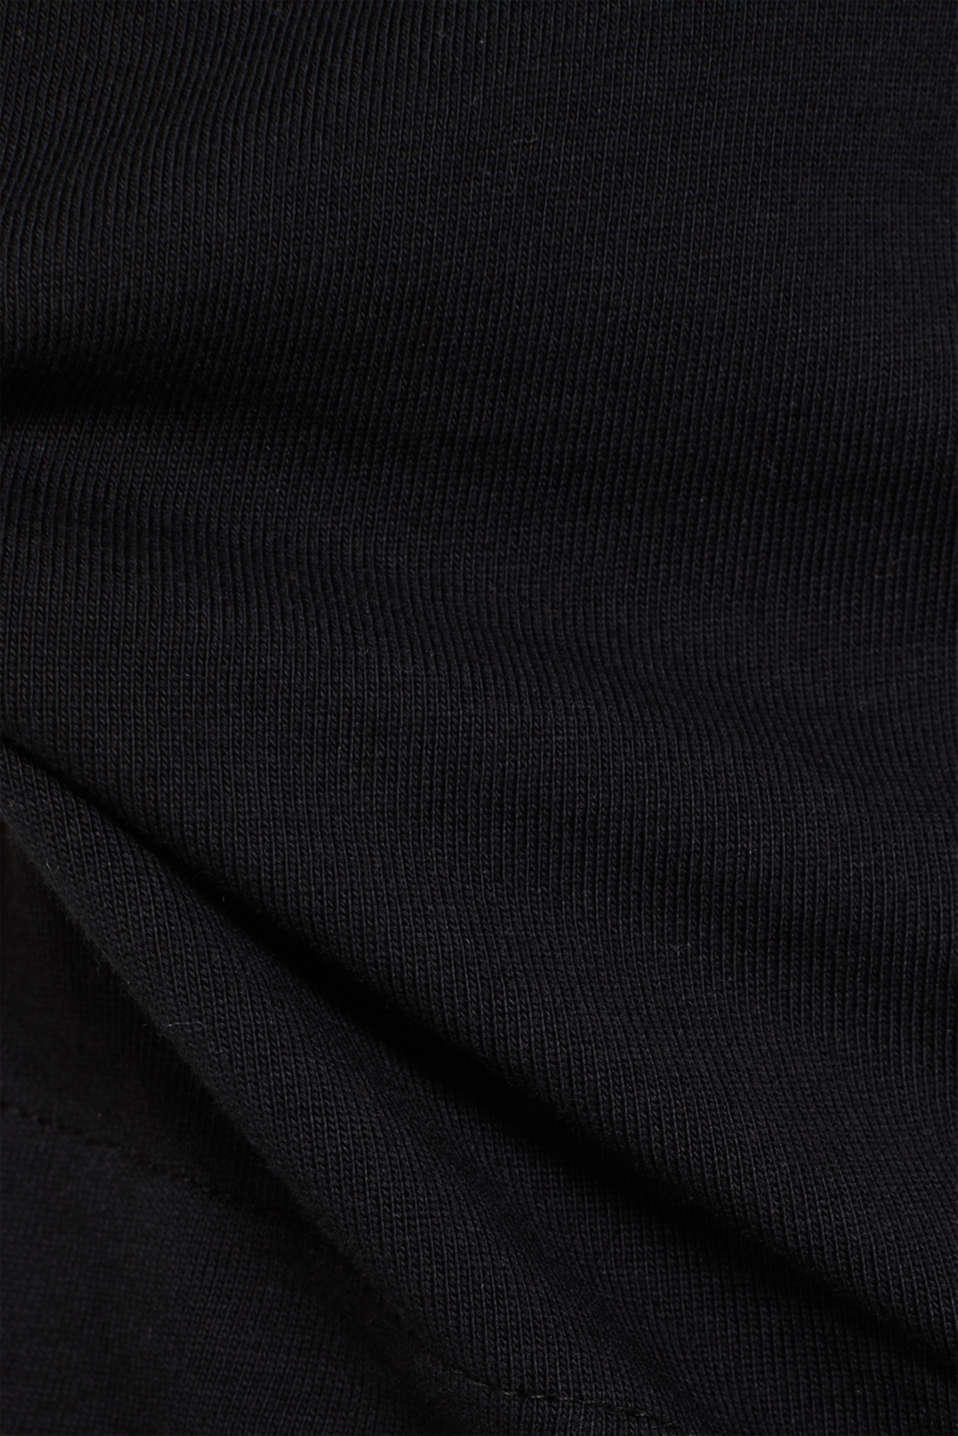 Embroidered sweatshirt, 100% cotton, BLACK, detail image number 4